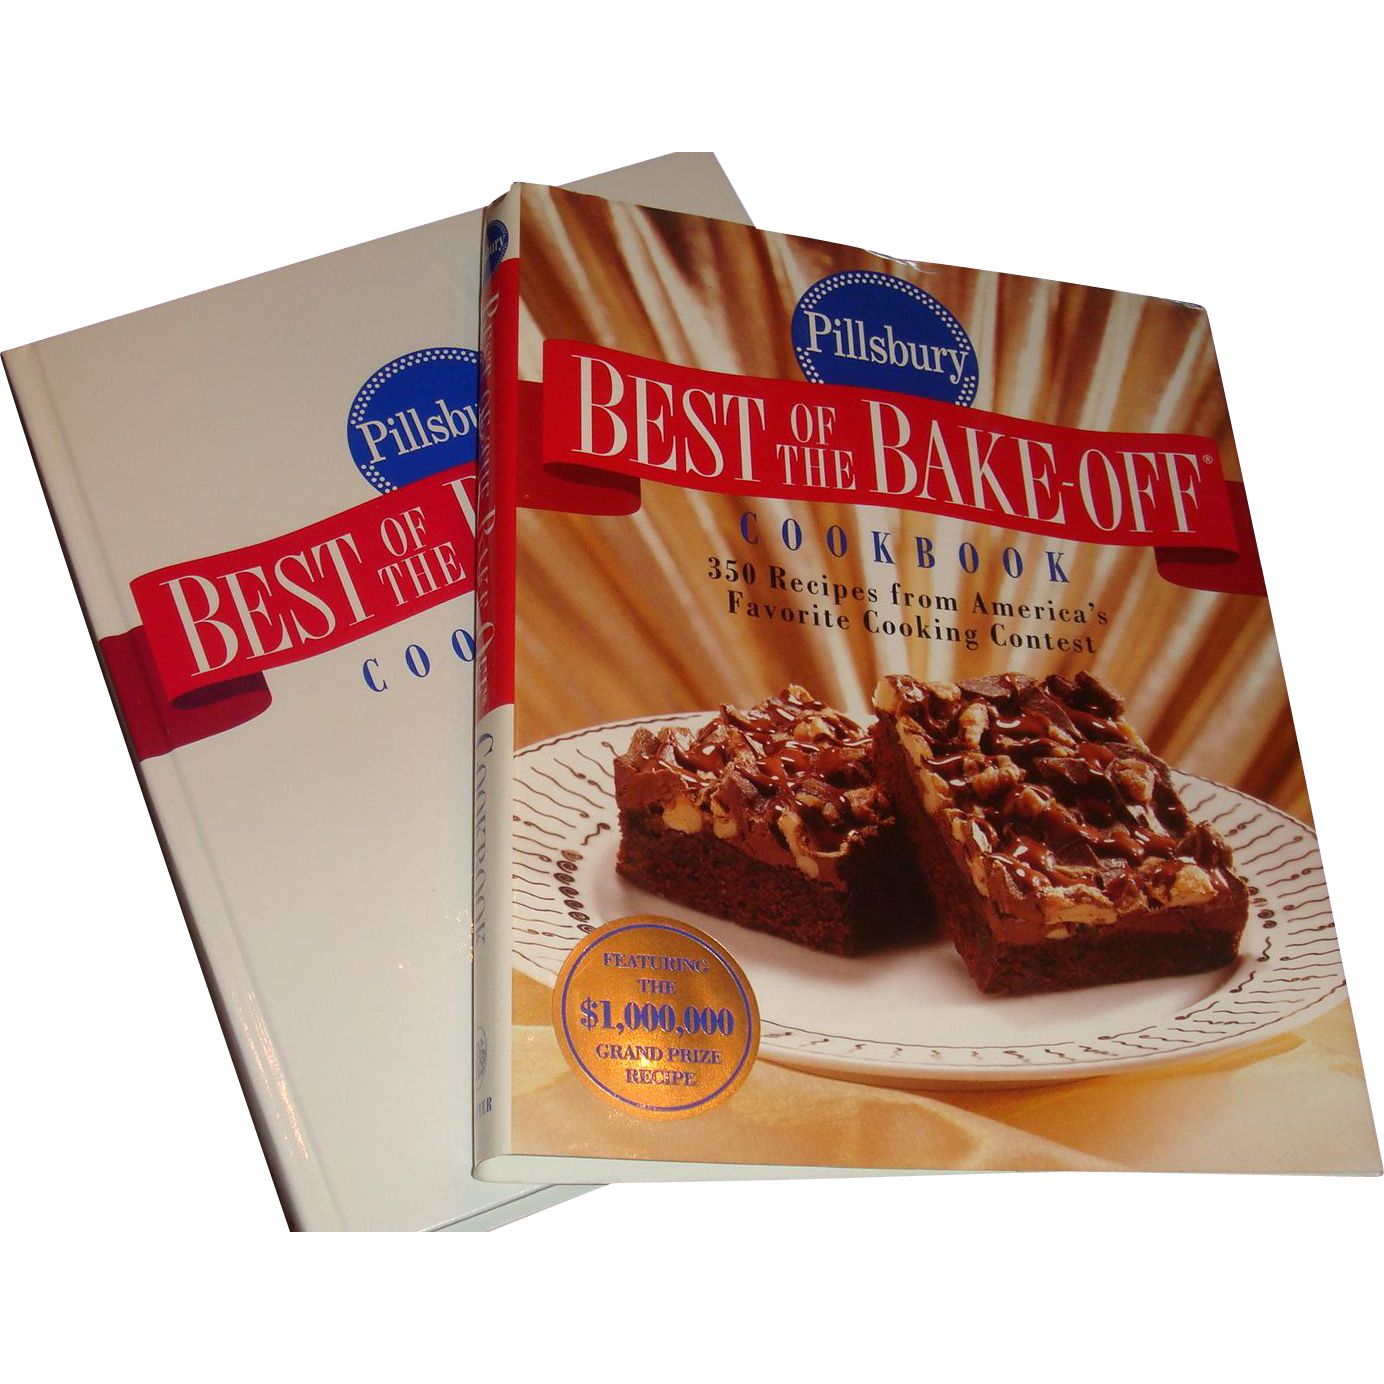 Like New 1996 Pillsbury Best of the Bake Off Cookbook Hardback with Dust Jacket